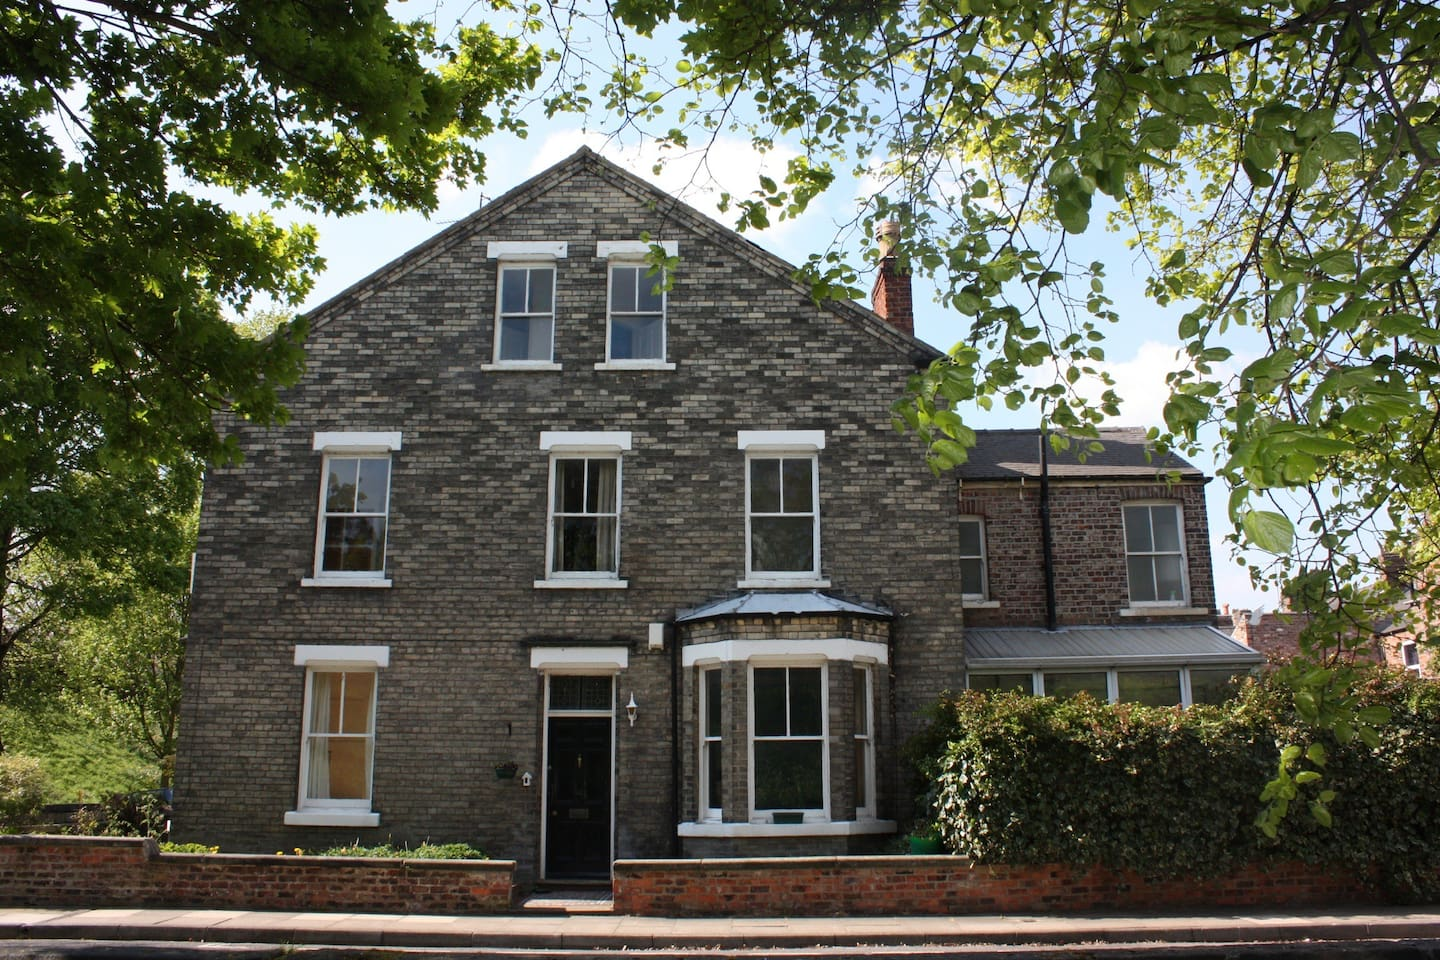 Large 5 bedroom house on the corner of Newton Terrace and Baile Hill Terrace. Originally build in the 1890's. Parking on the street in front of our house